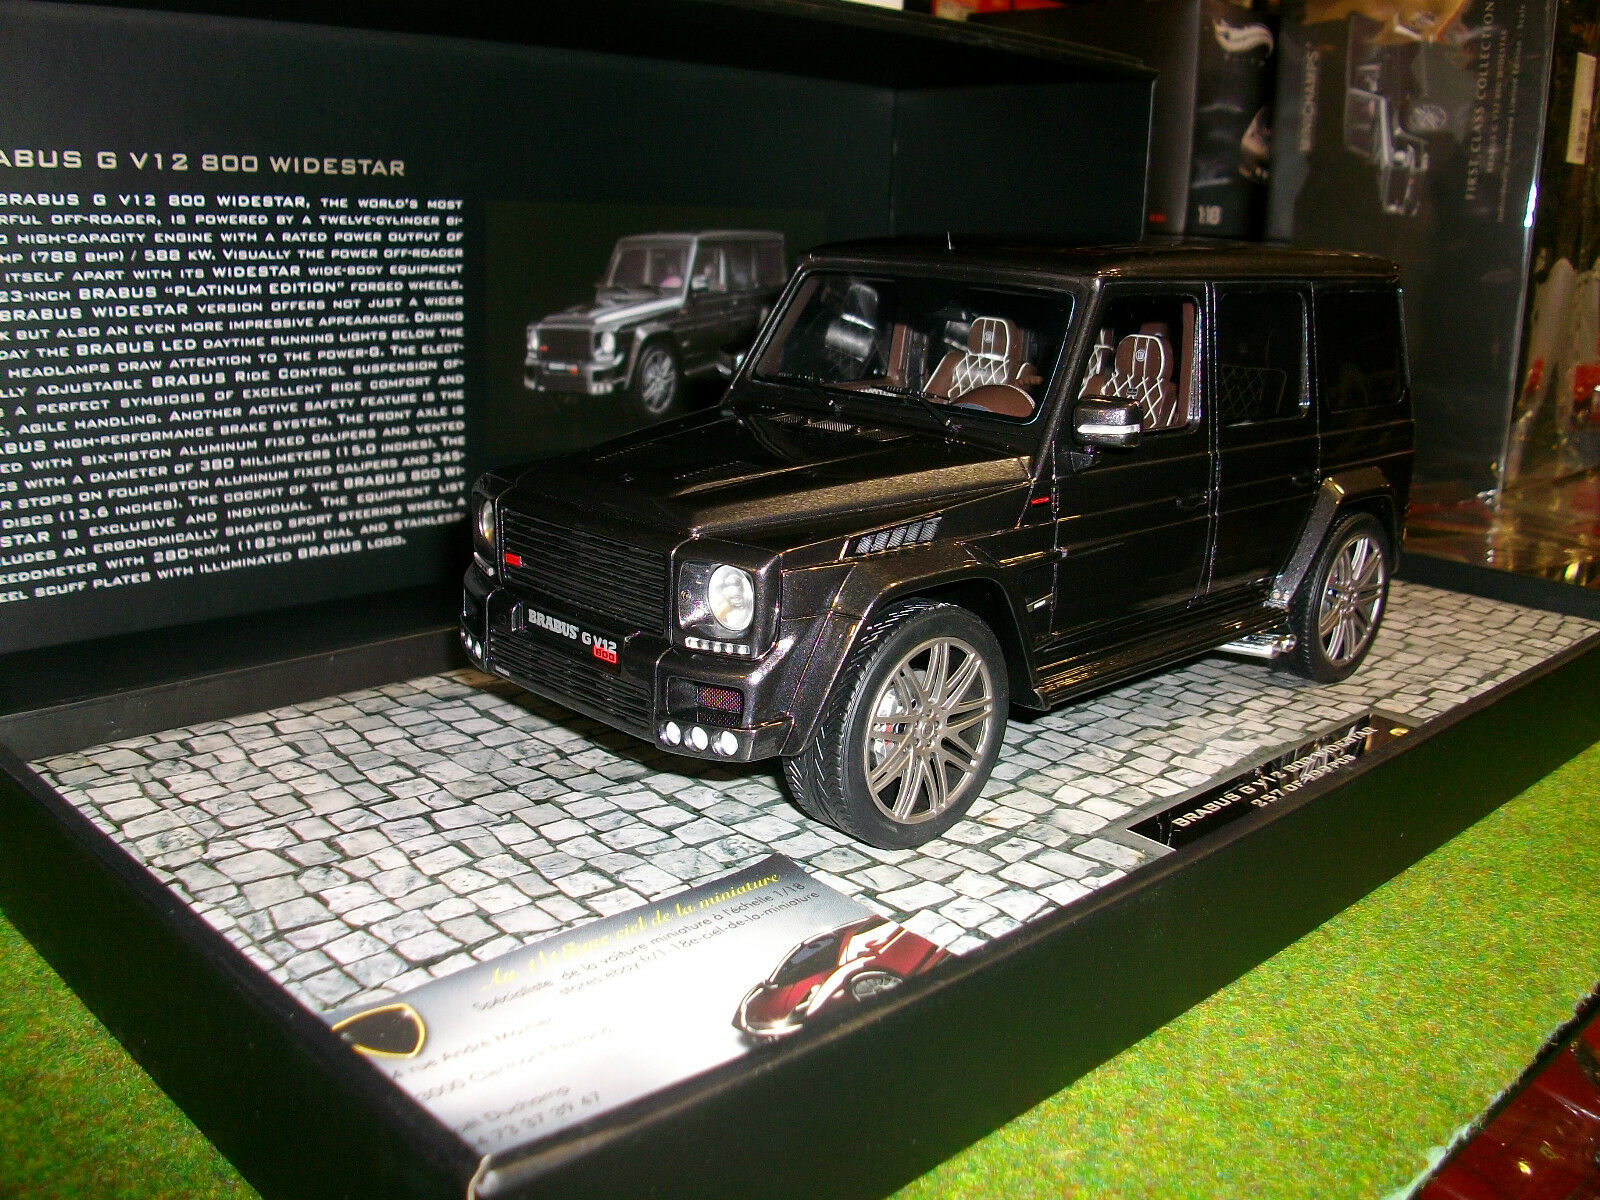 BRABUS G V12 800 WIDESTAR 1 18 MINICHAMPS 107032300 voiture miniature collection